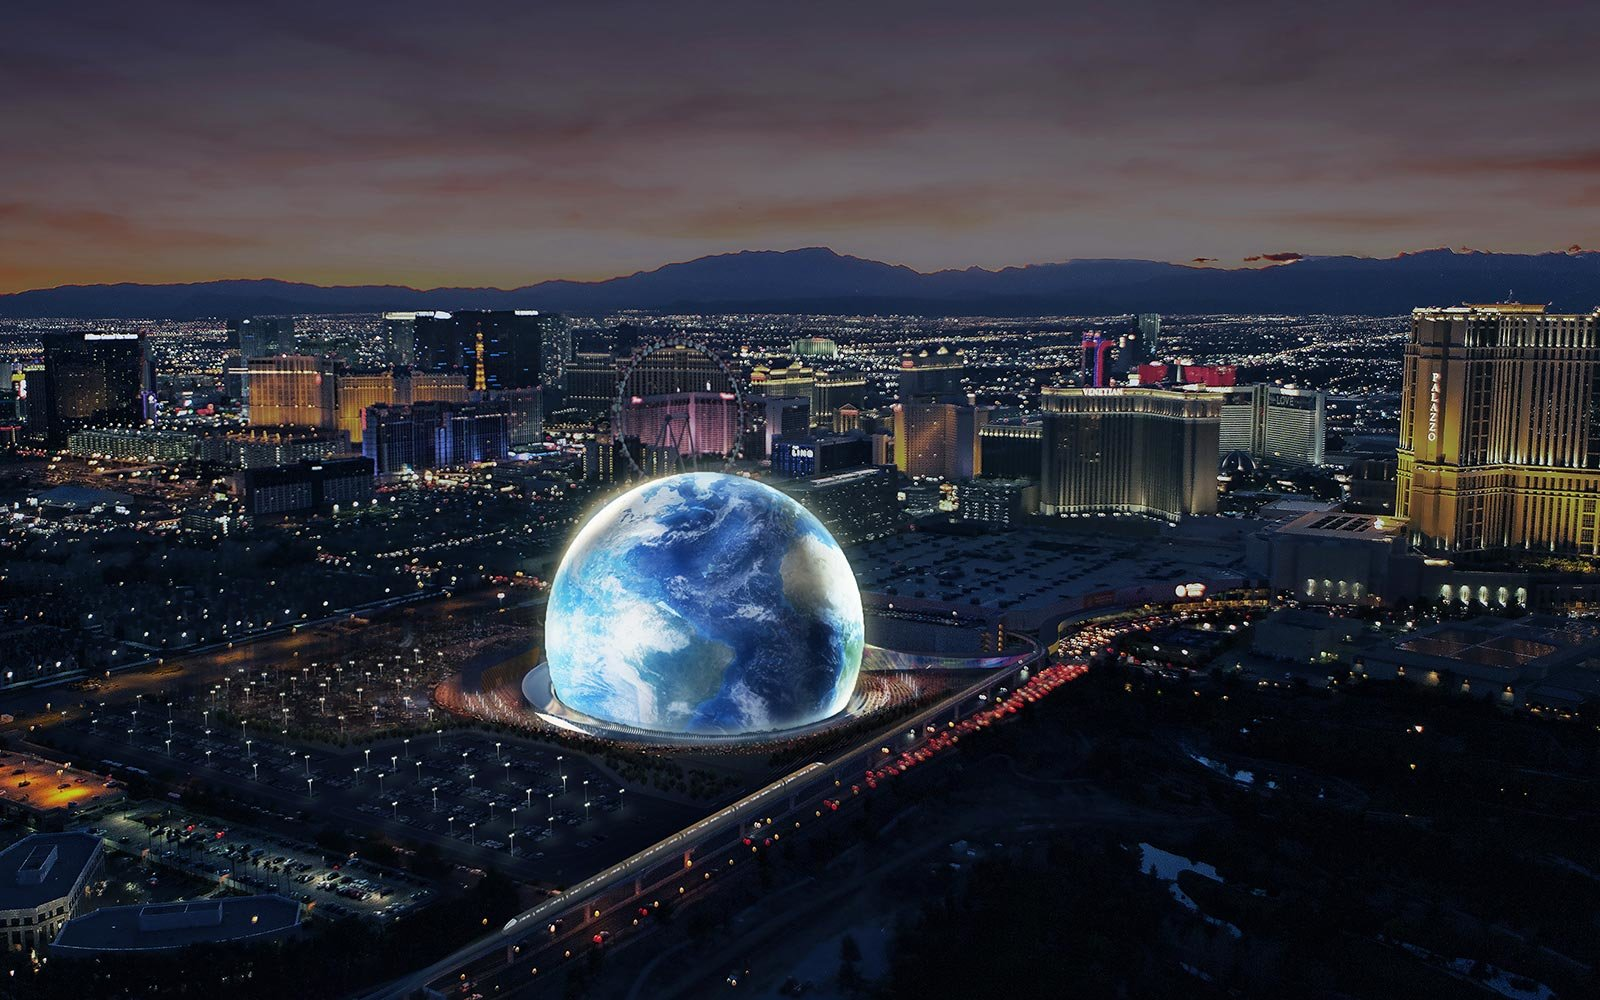 A Giant Space Orb Concert Venue Is Coming To Las Vegas In